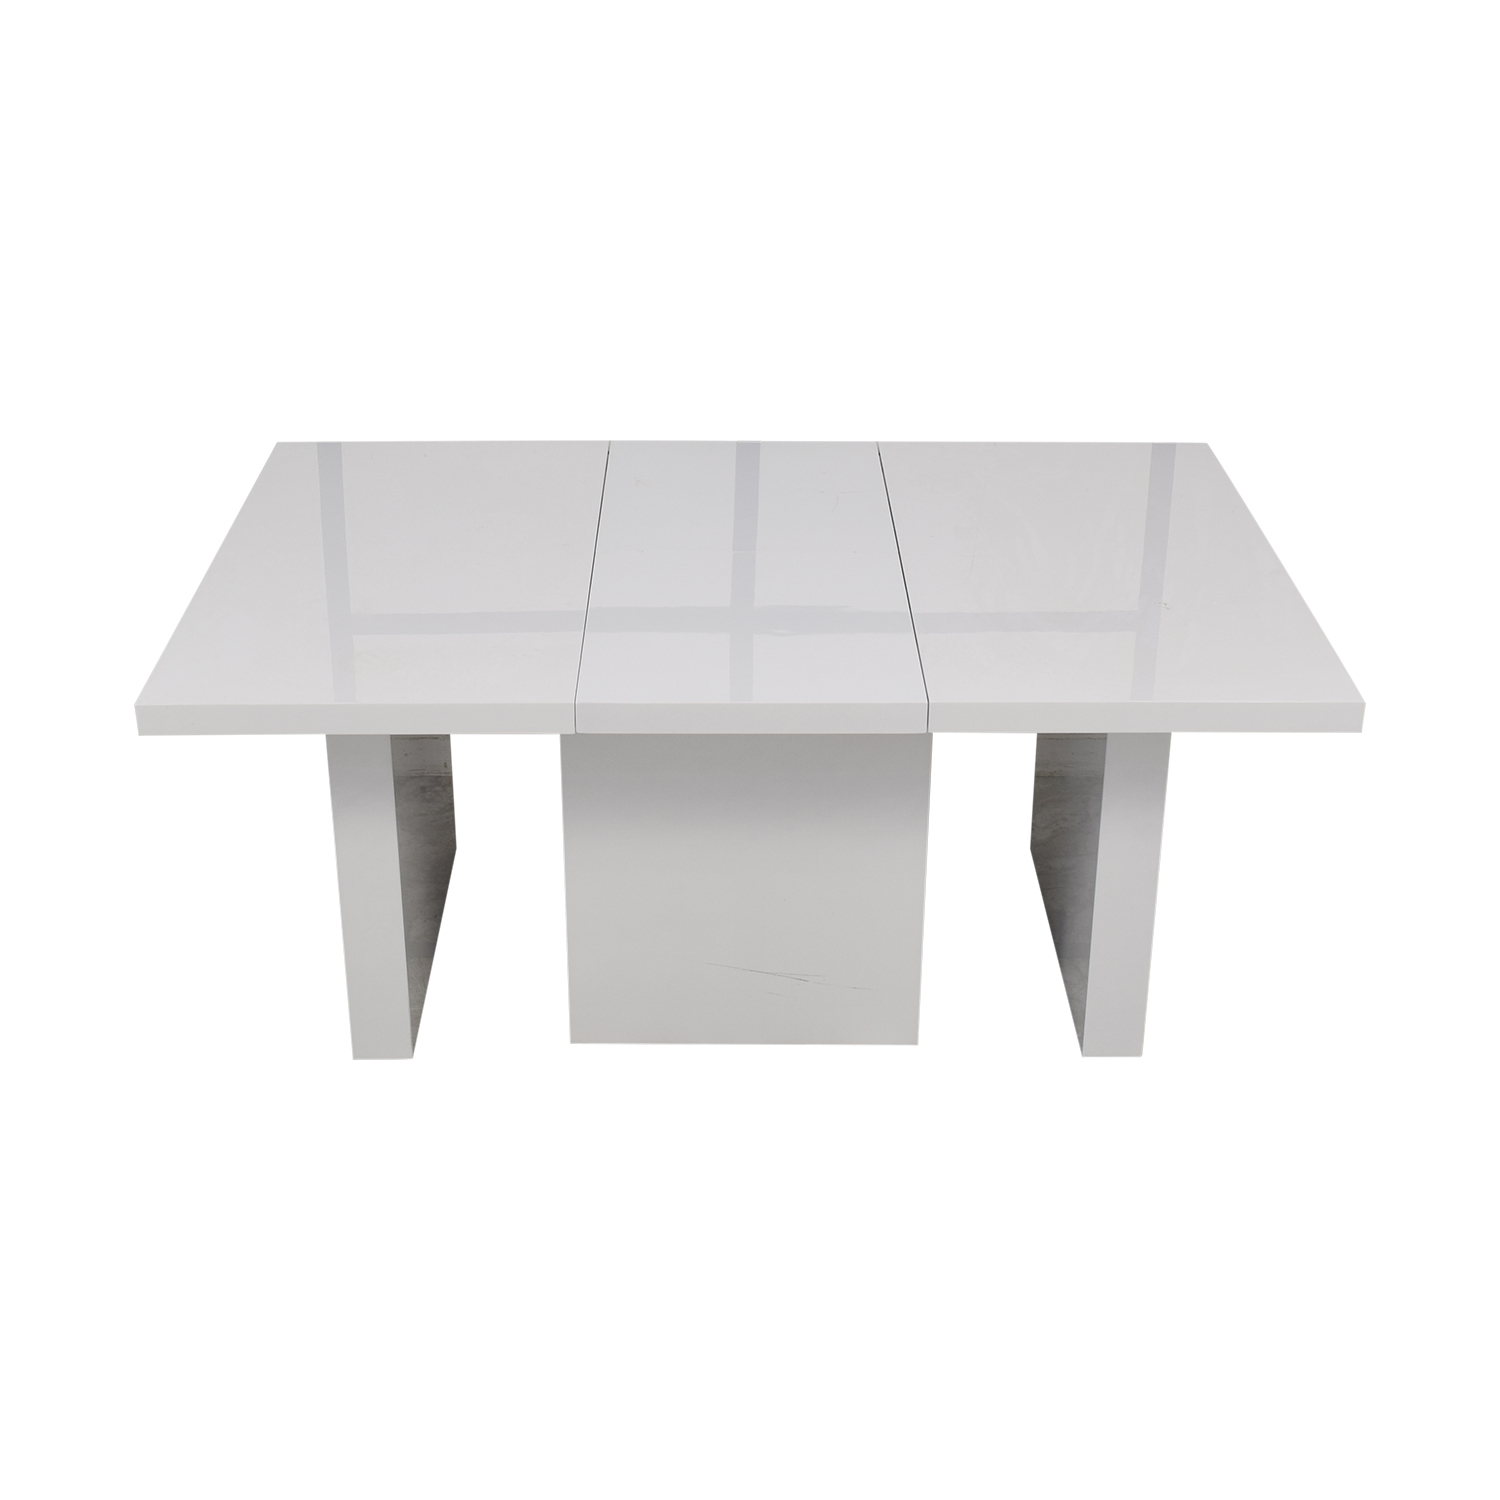 Orren Ellis Orren Ellis Stotfold White Extendable Table Tables